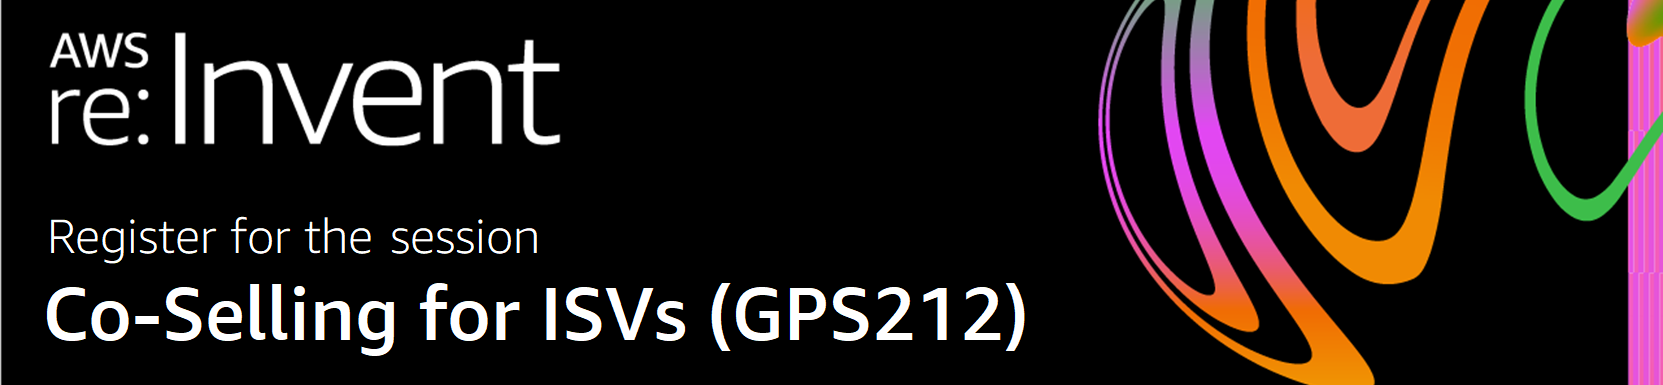 GPS-212-Session-reInvent-2020-1